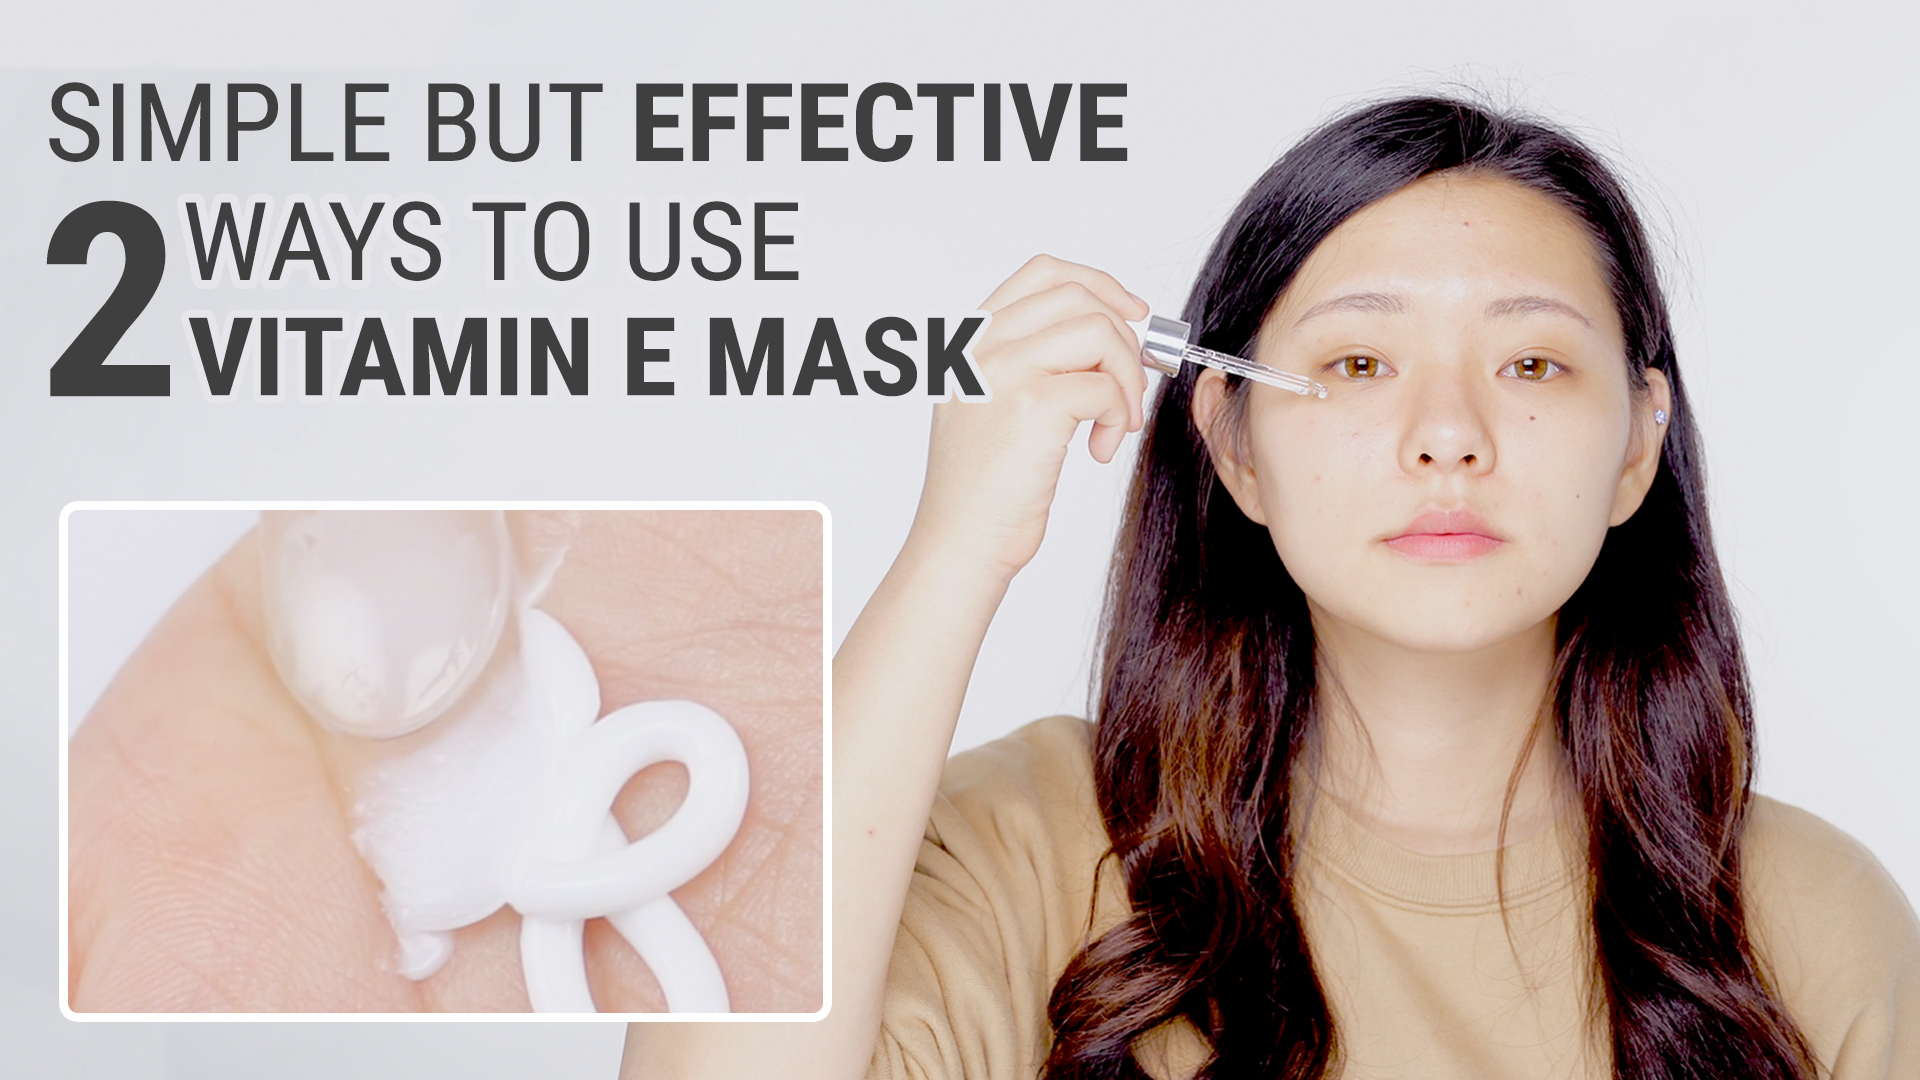 How To Double The Effect of Vitamin C | Klairs Freshly Juiced Vitamin E Mask